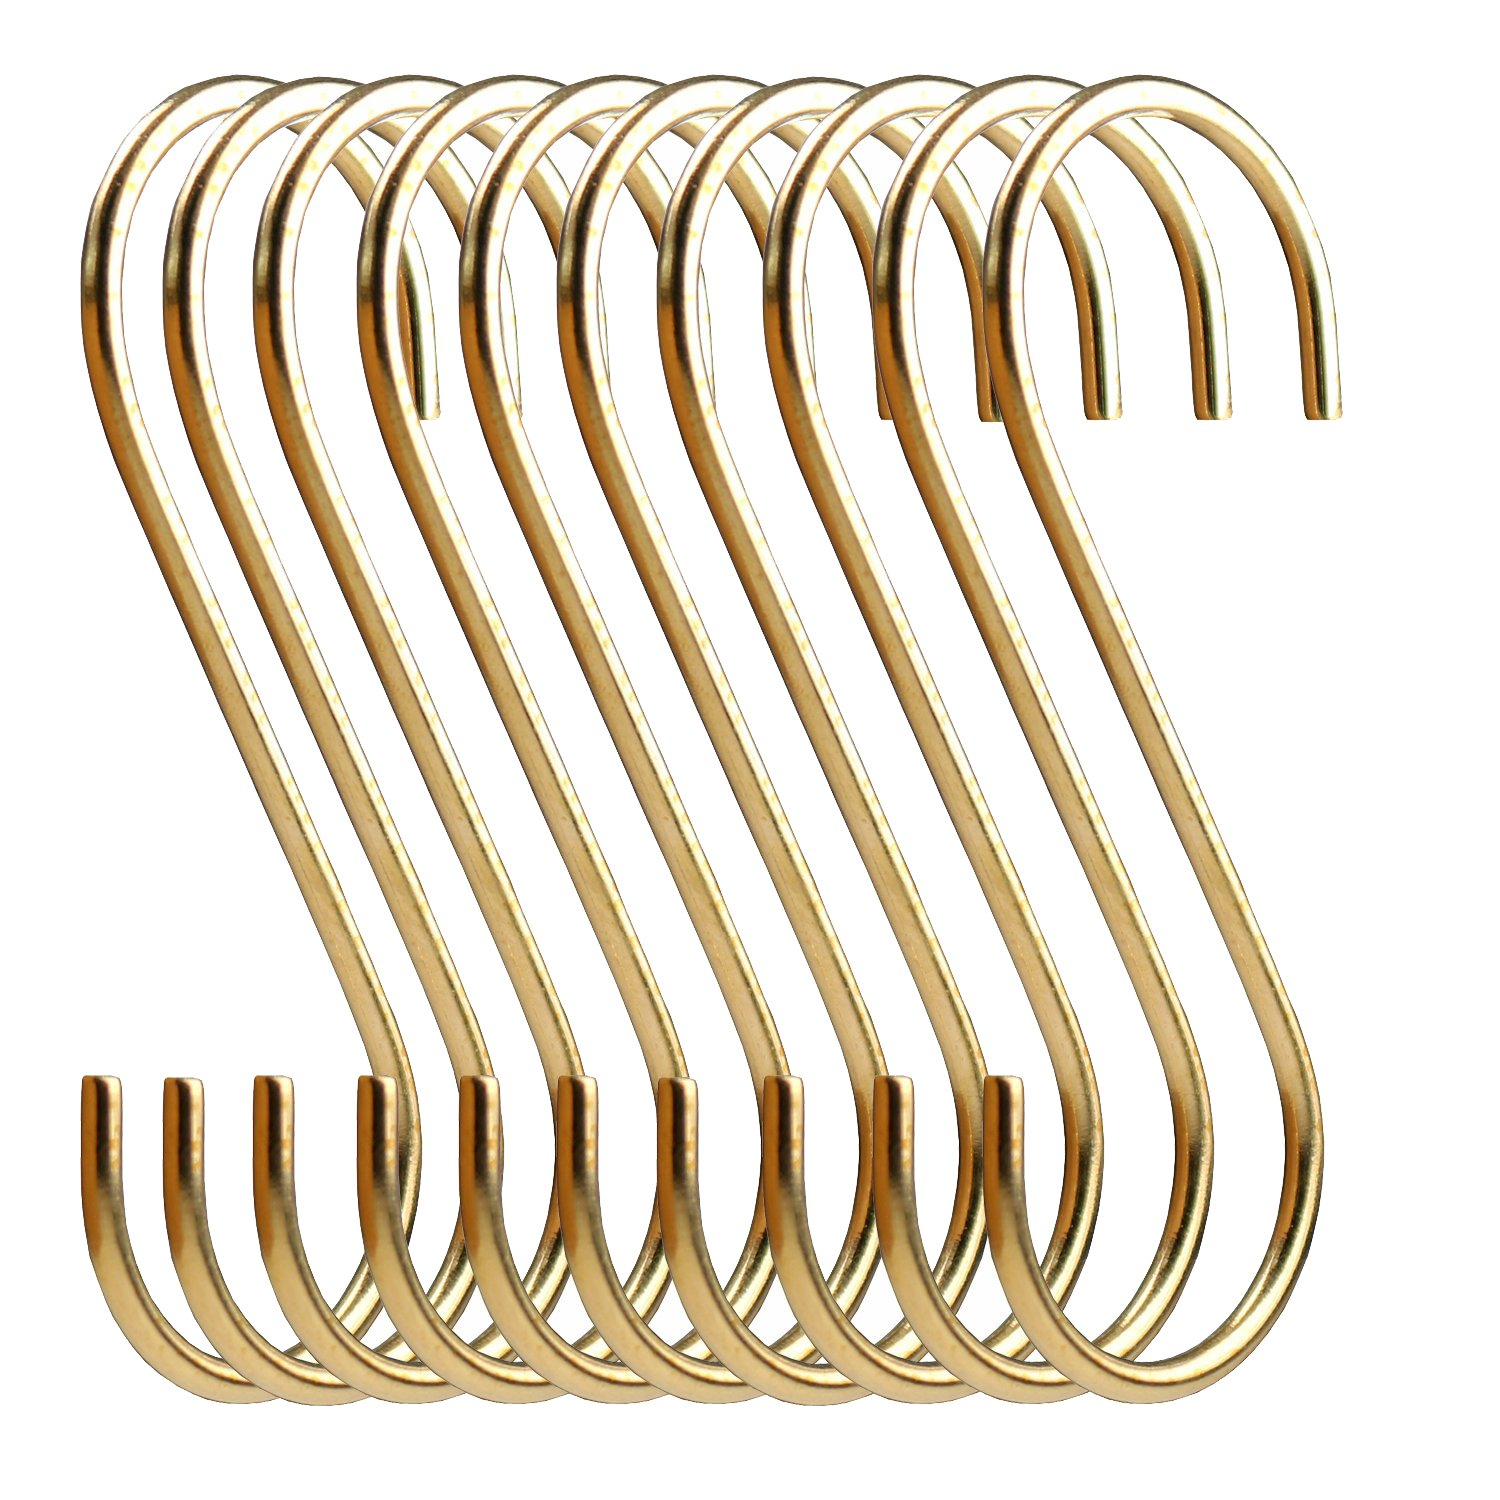 simpletome S Hooks Copper Hangers for Kitchen Bathroom Bedroom Office (Copper/10PCS)